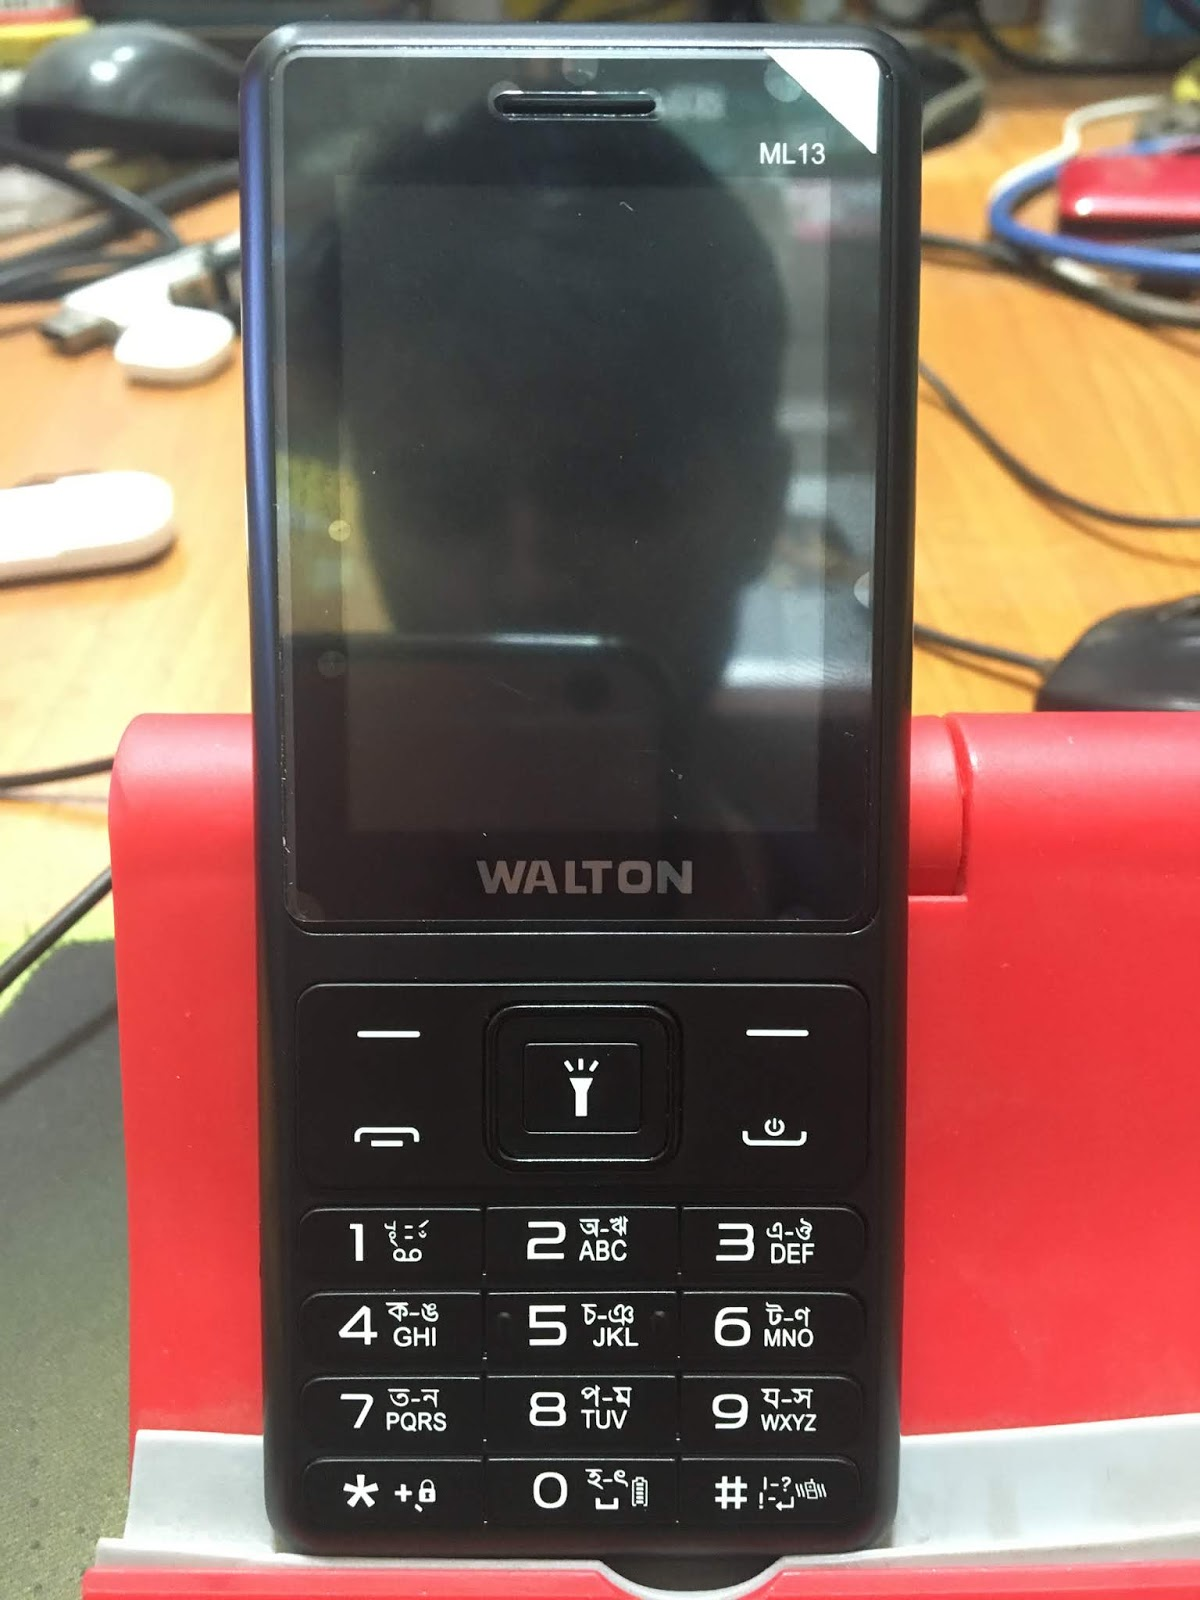 Walton ML13 Flash File (Stock Rom) Firmware Free Without Password